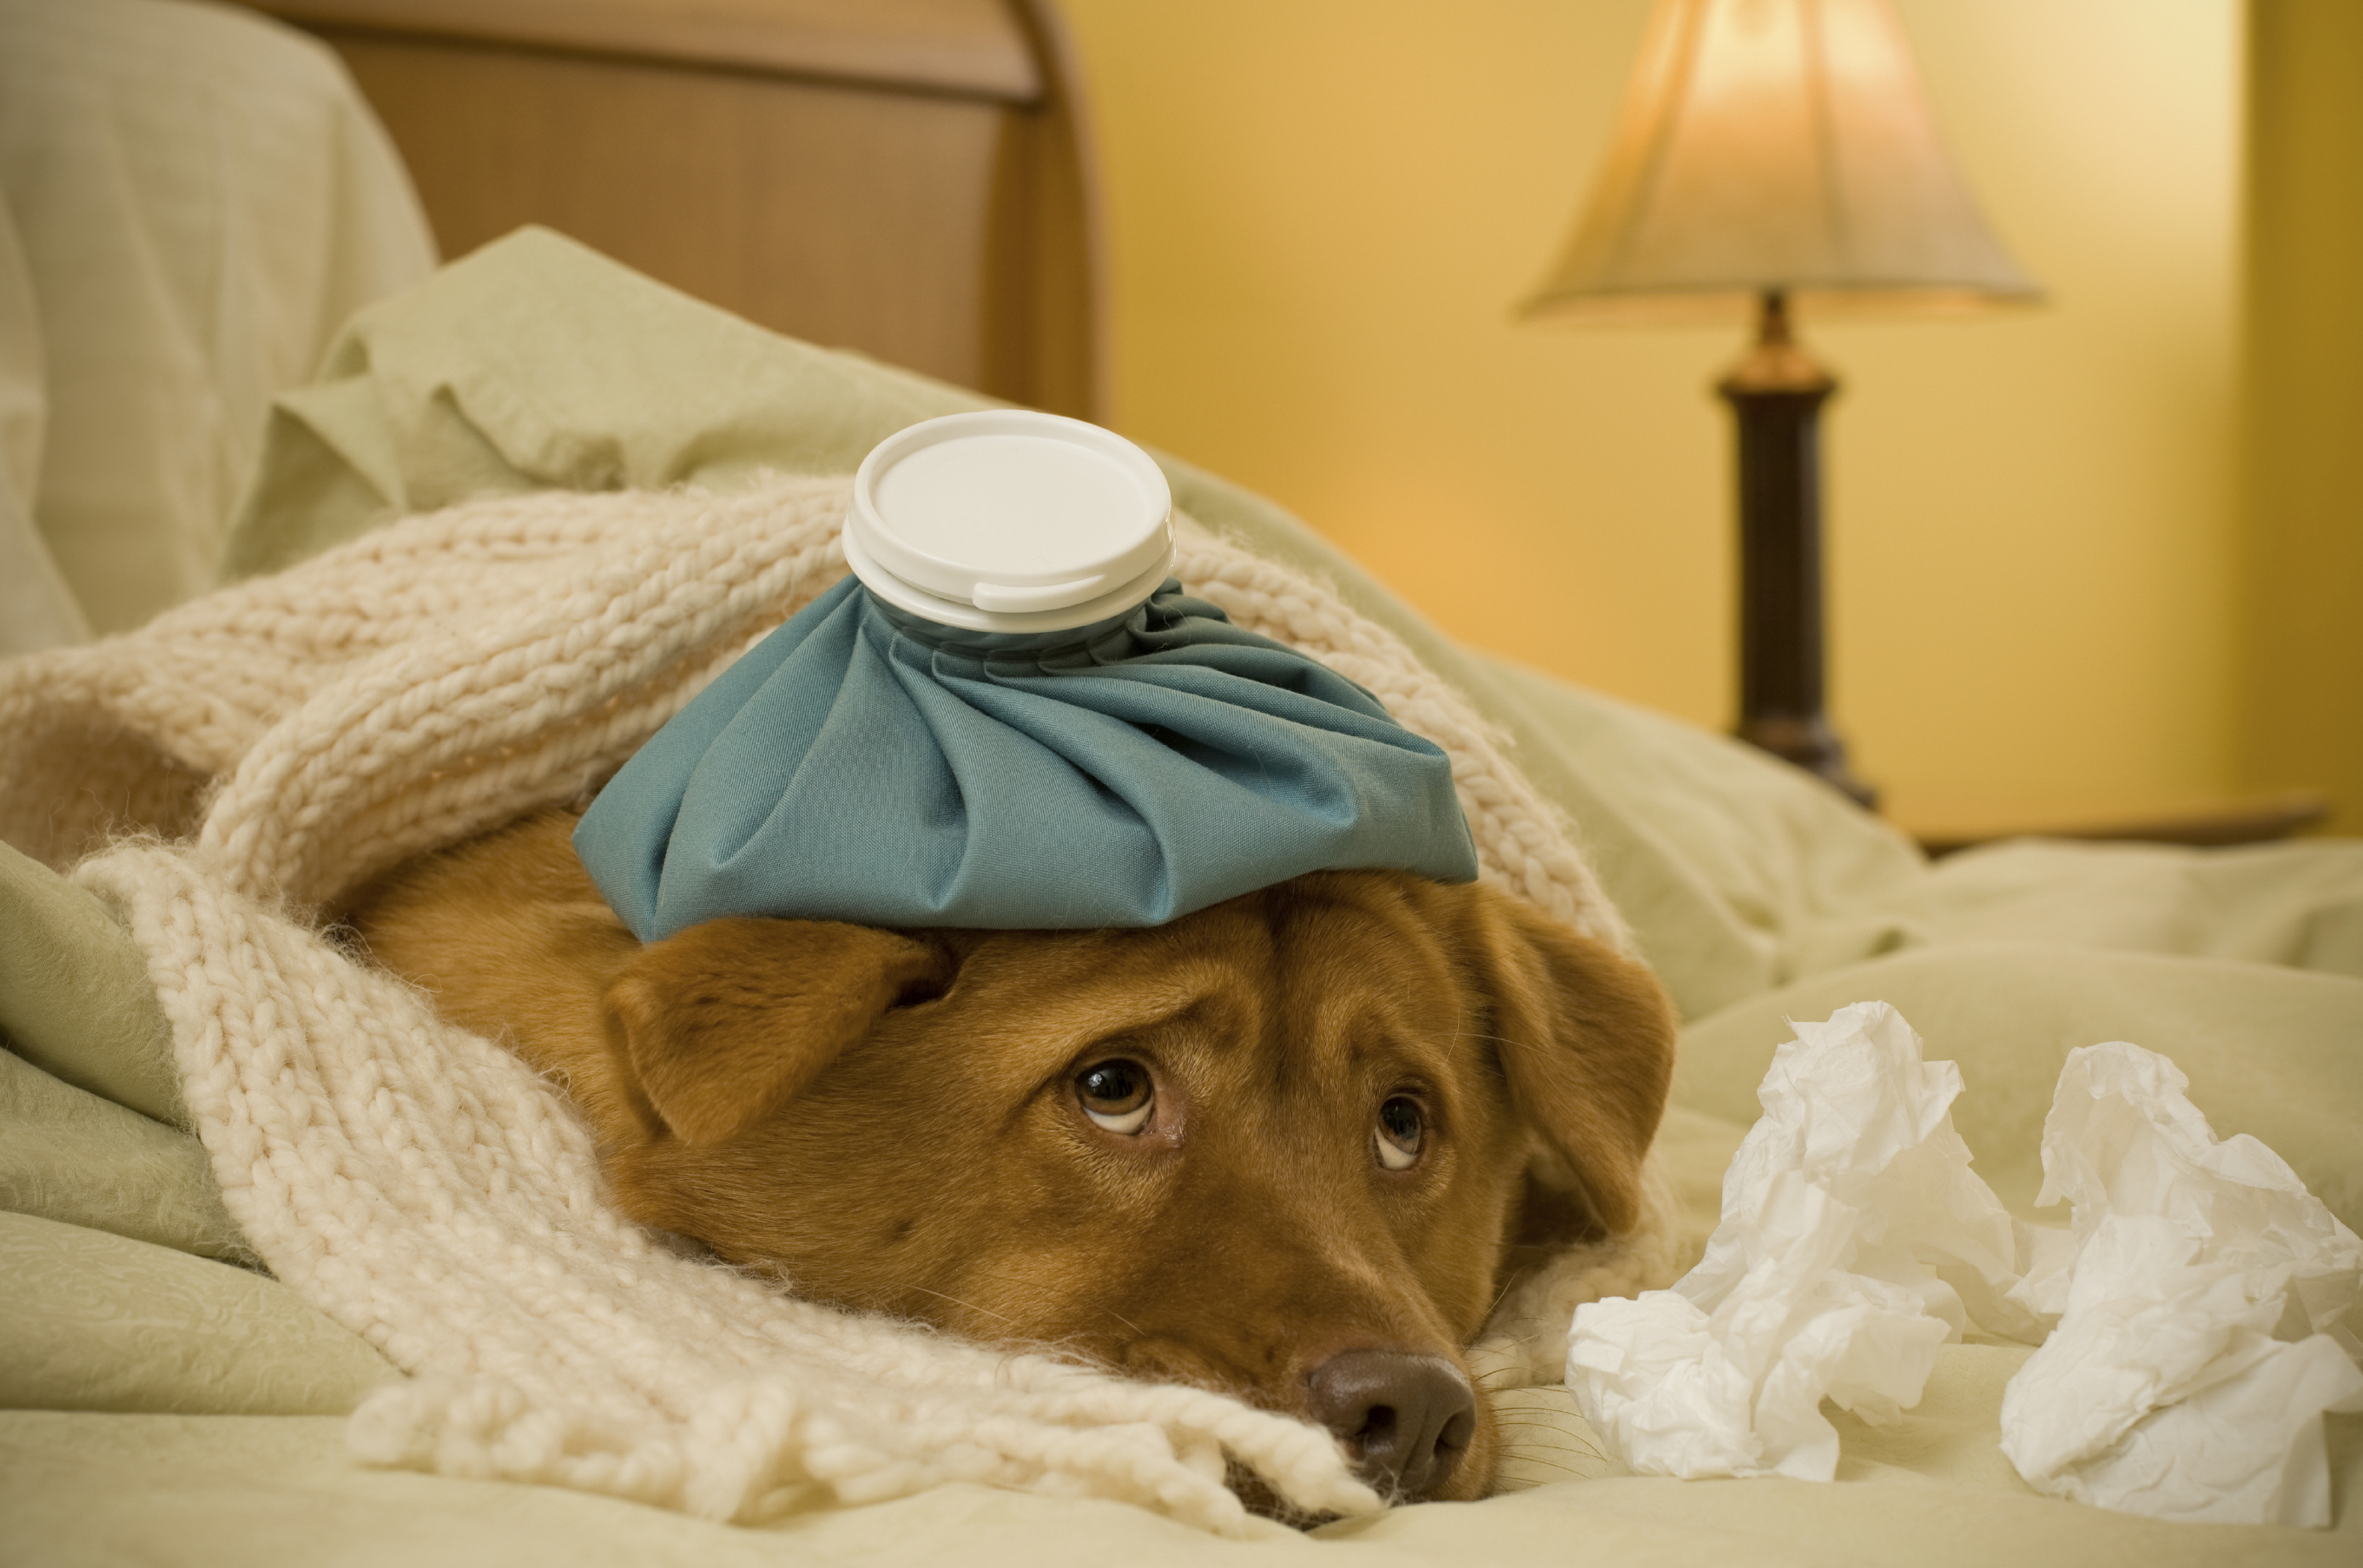 Veterinarians Report Outbreak Of Highly Contagious Dog Flu